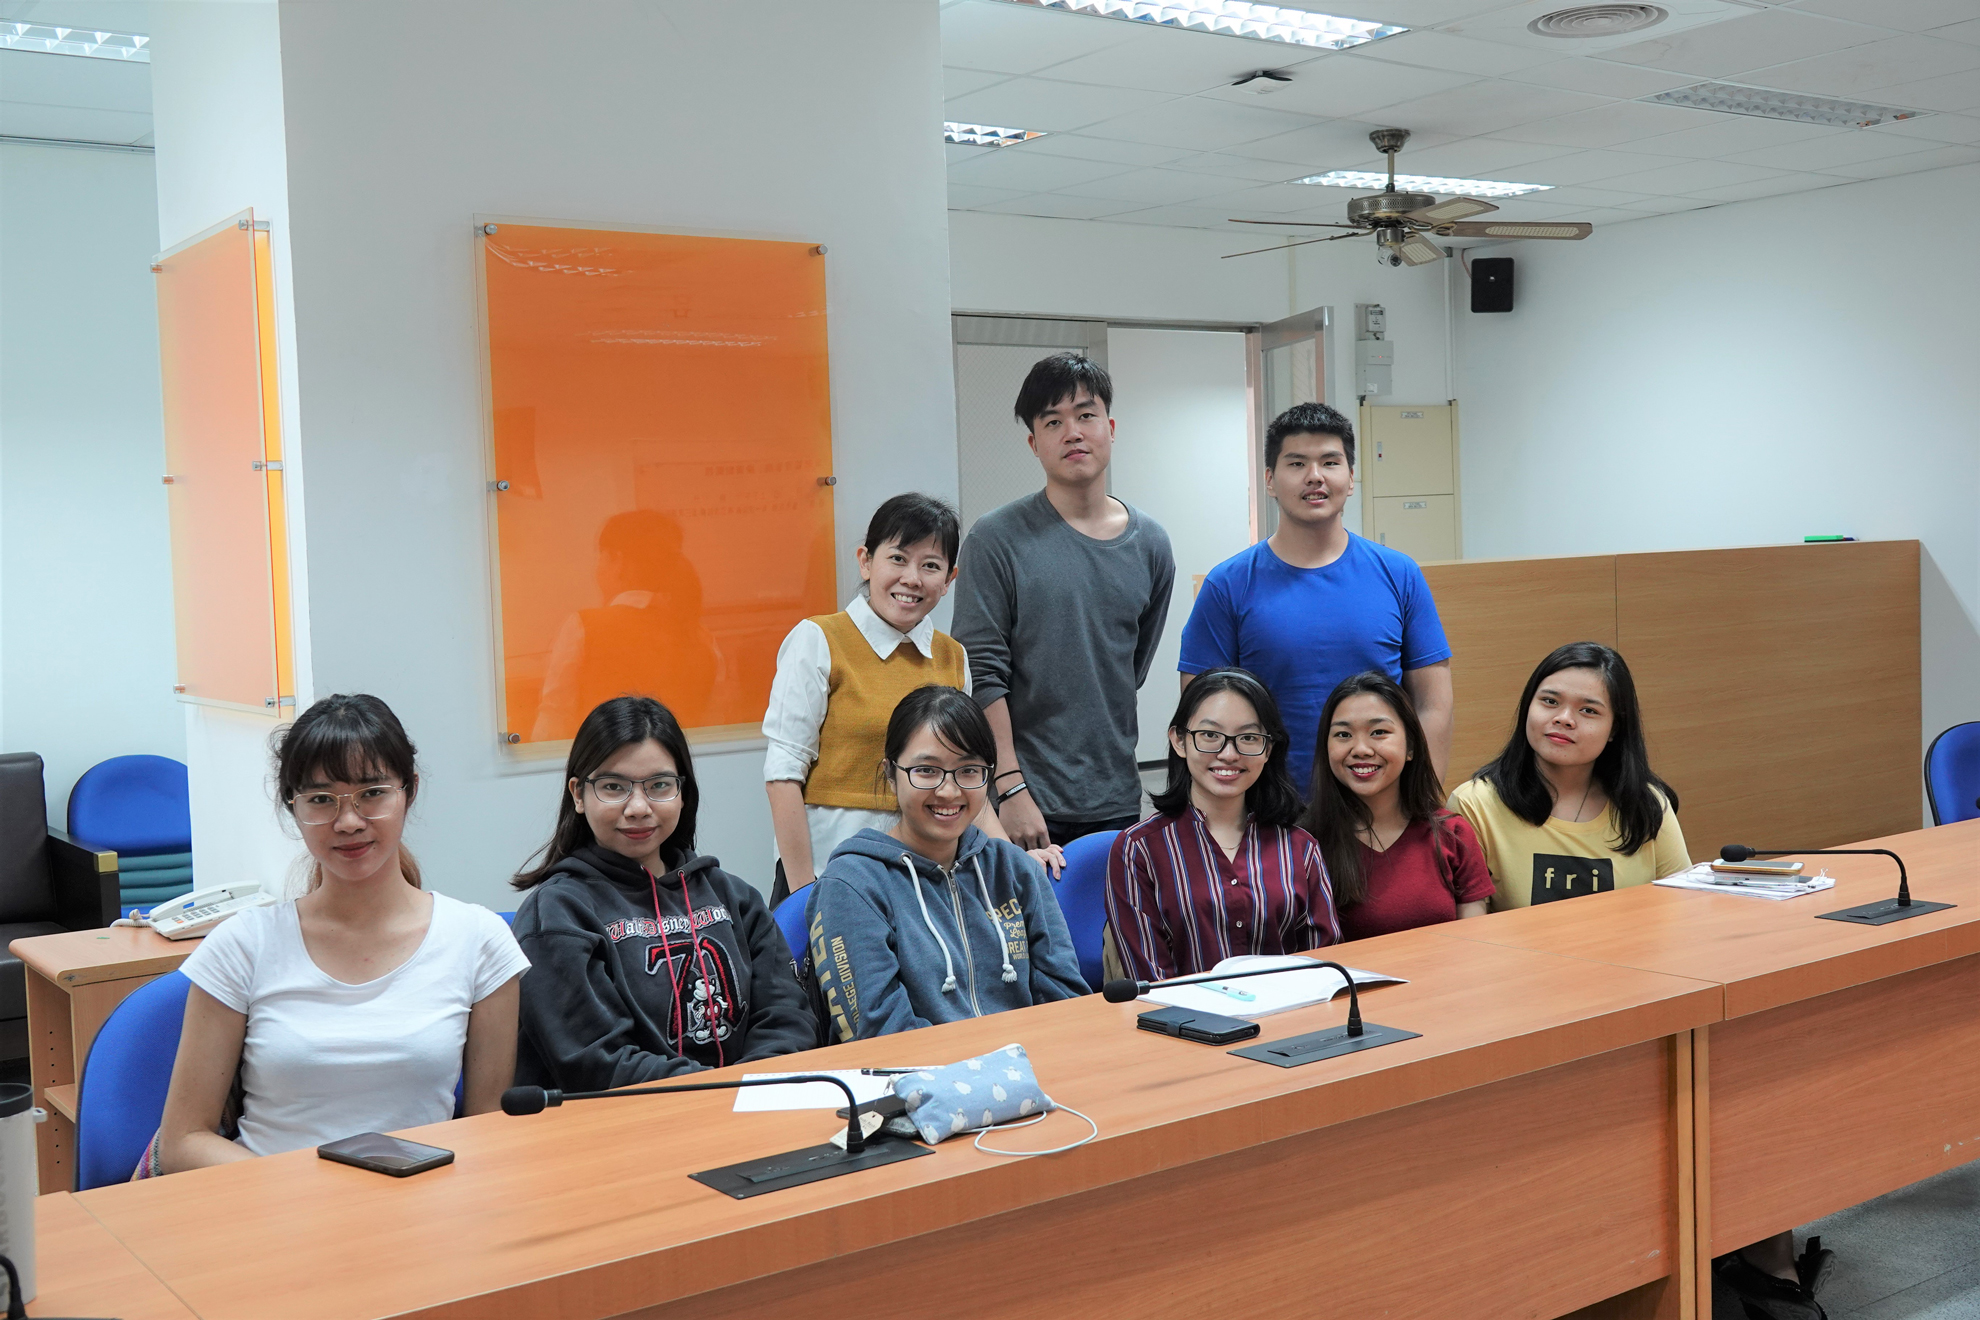 Photo with CTBC international students and had a great conversation with each other